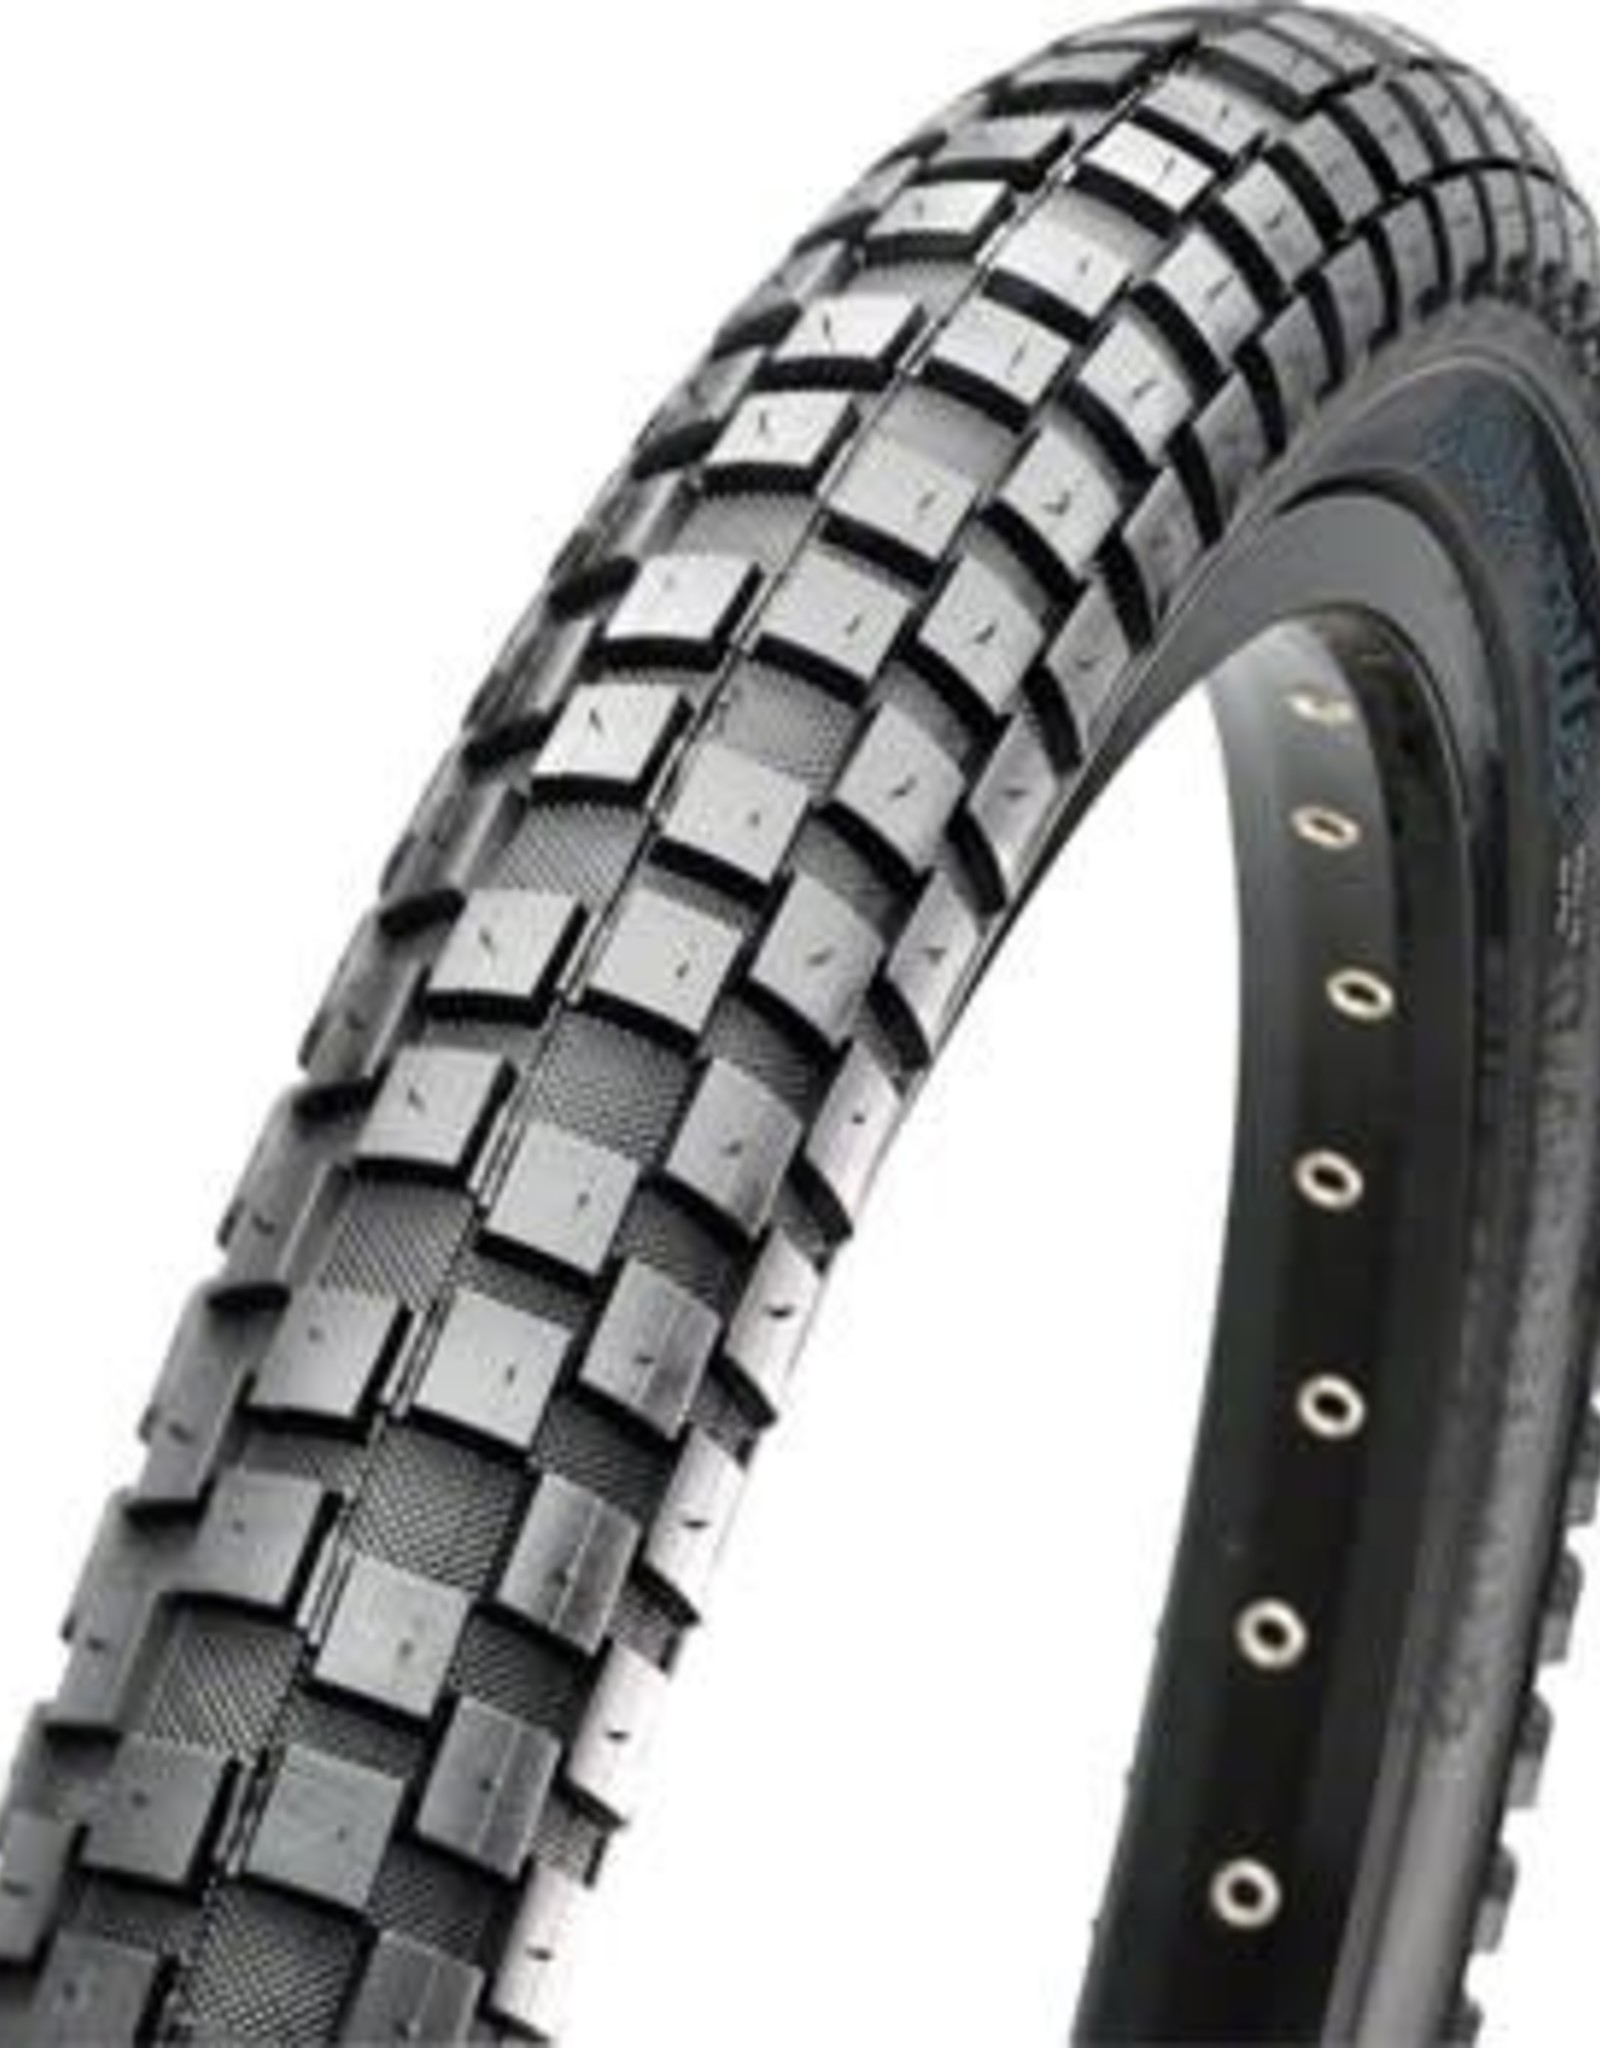 "Maxxis Maxxis Holy Roller Tire: 24 x  1.85"", Wire, 60tpi, Single Compound, Black"